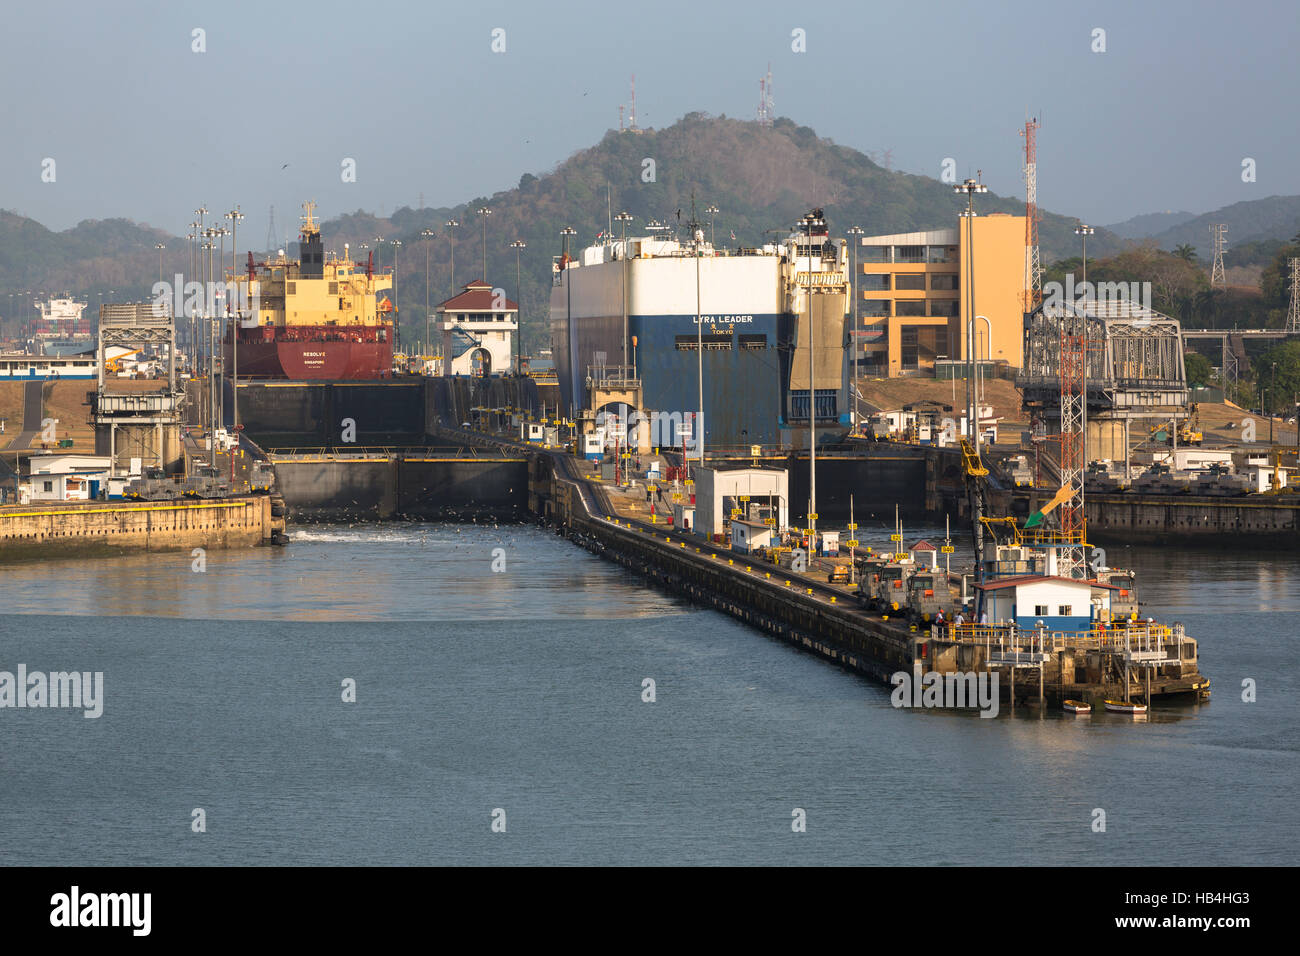 Cargo ships heading in to the Panama Canal from the Miraflores Lock on the Pacific Ocean side - Stock Image